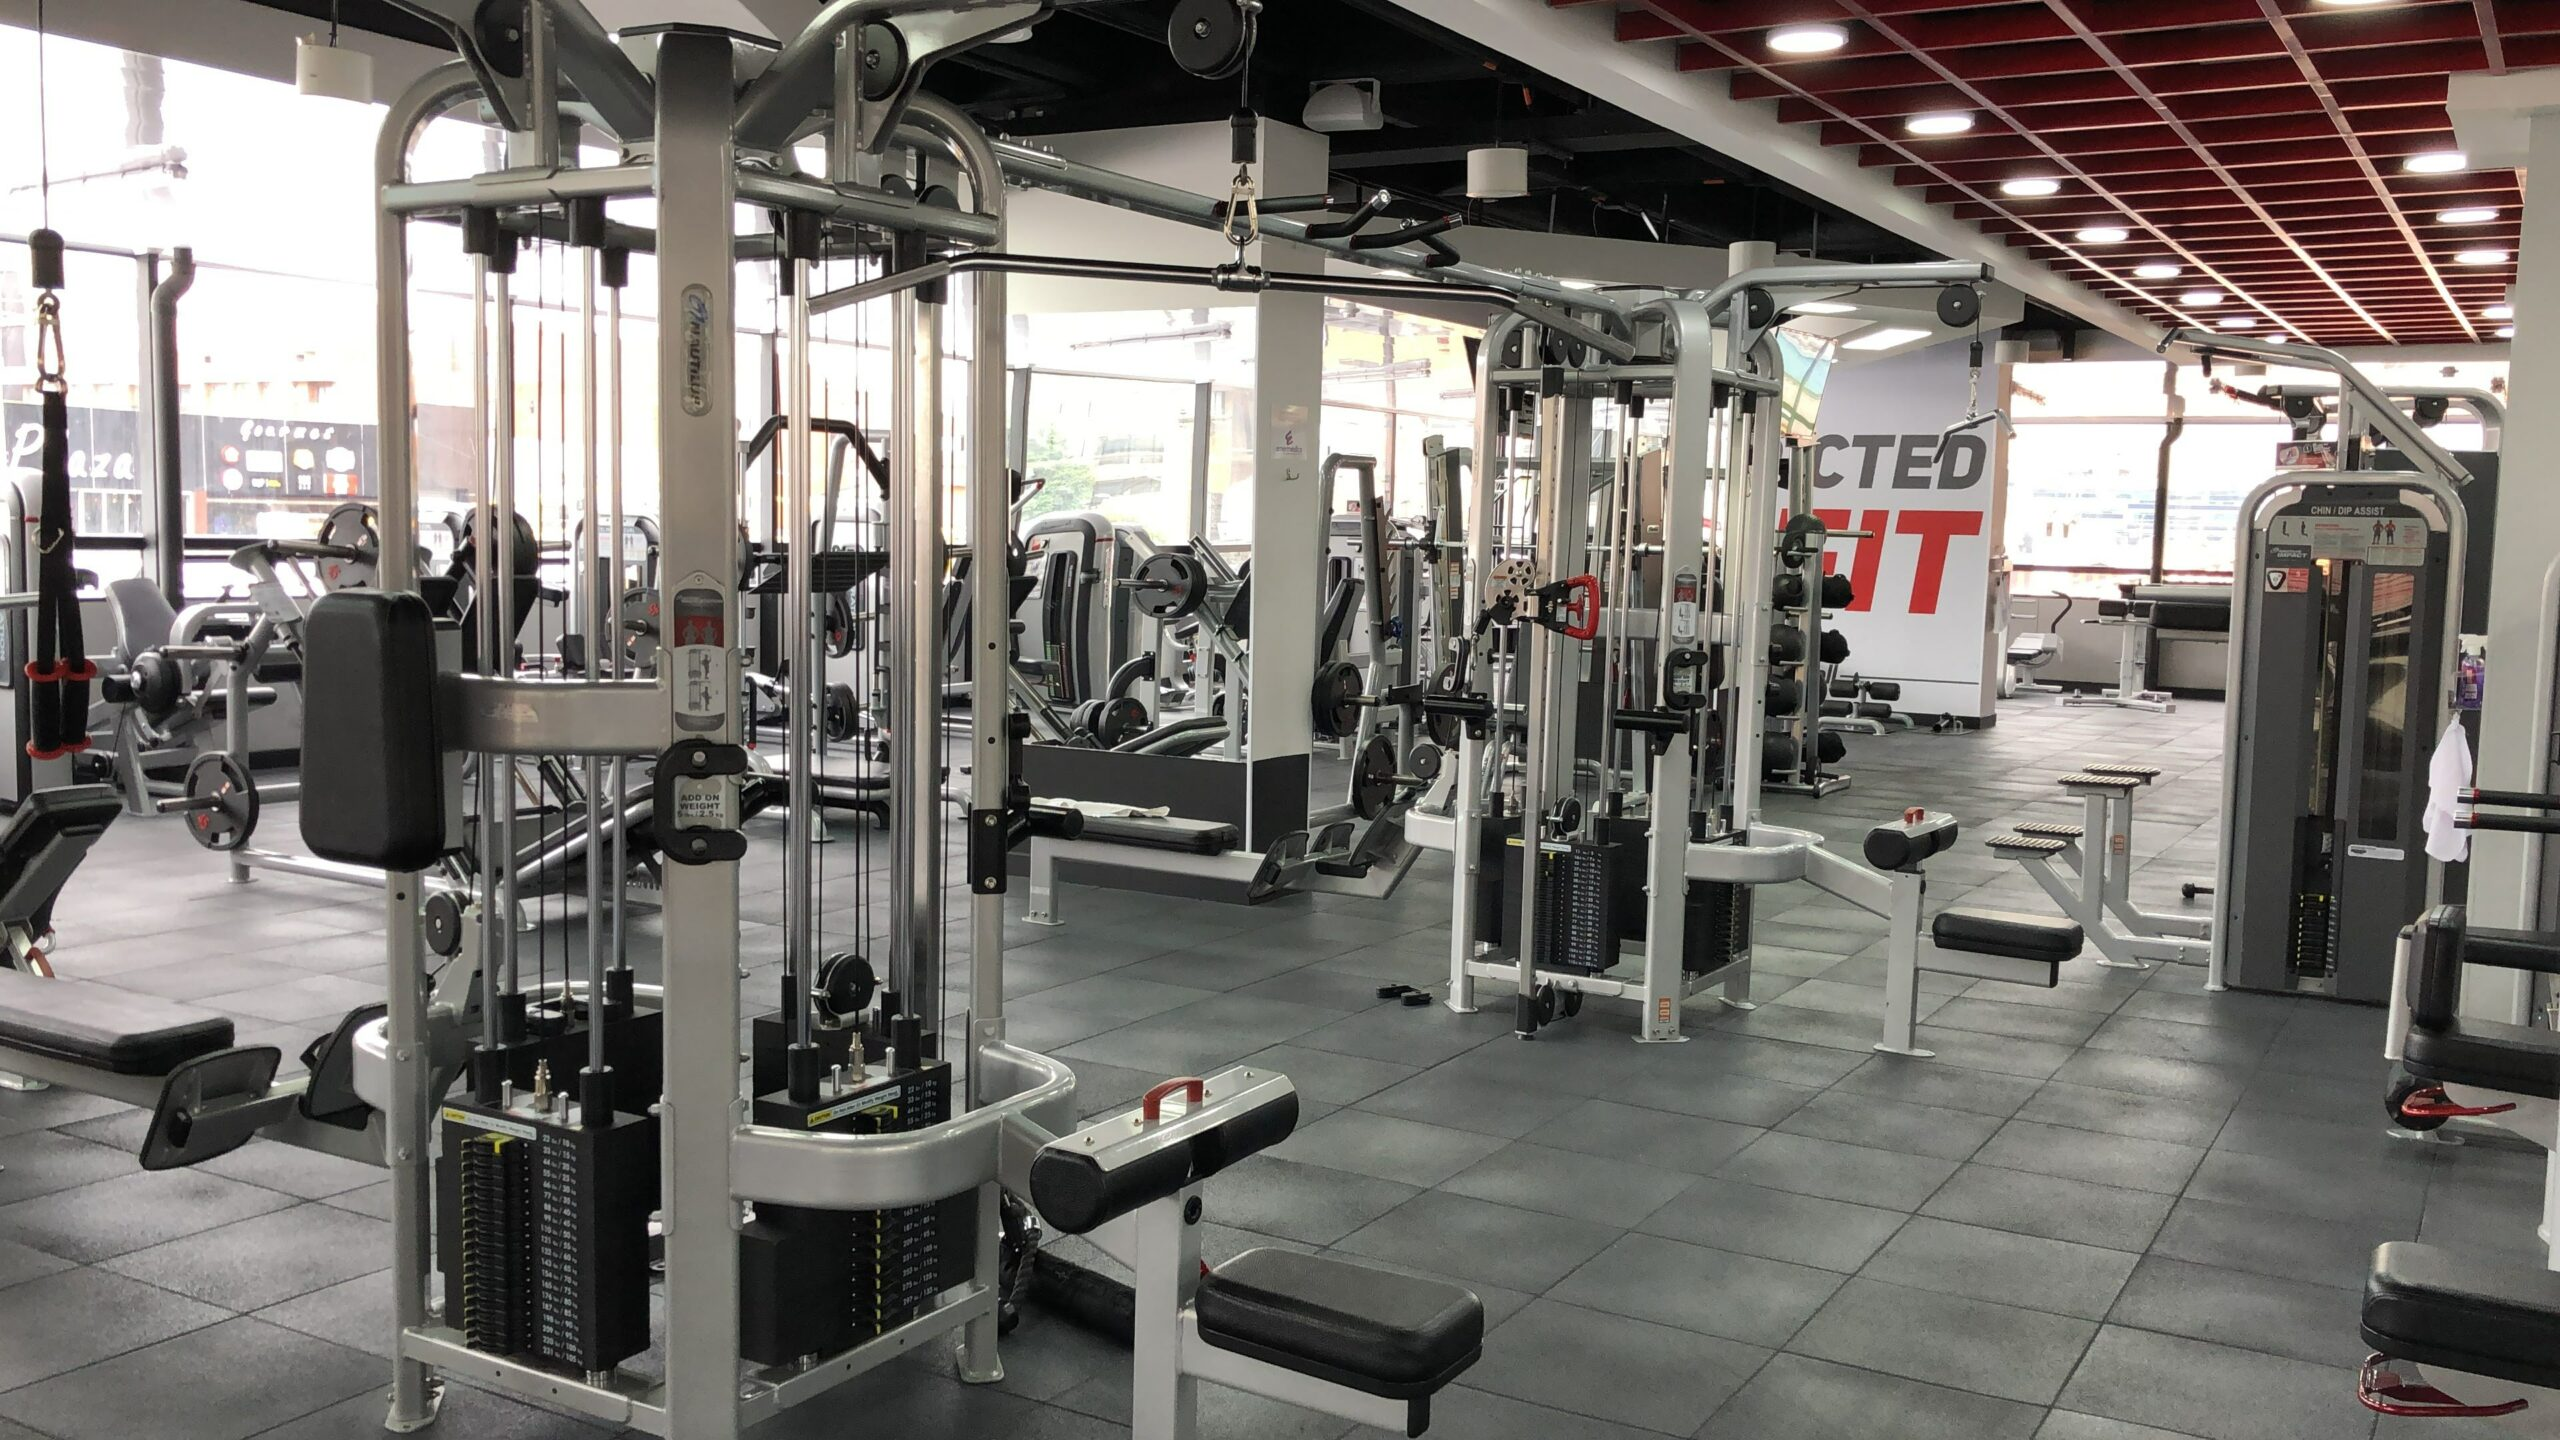 empty gyms scaled